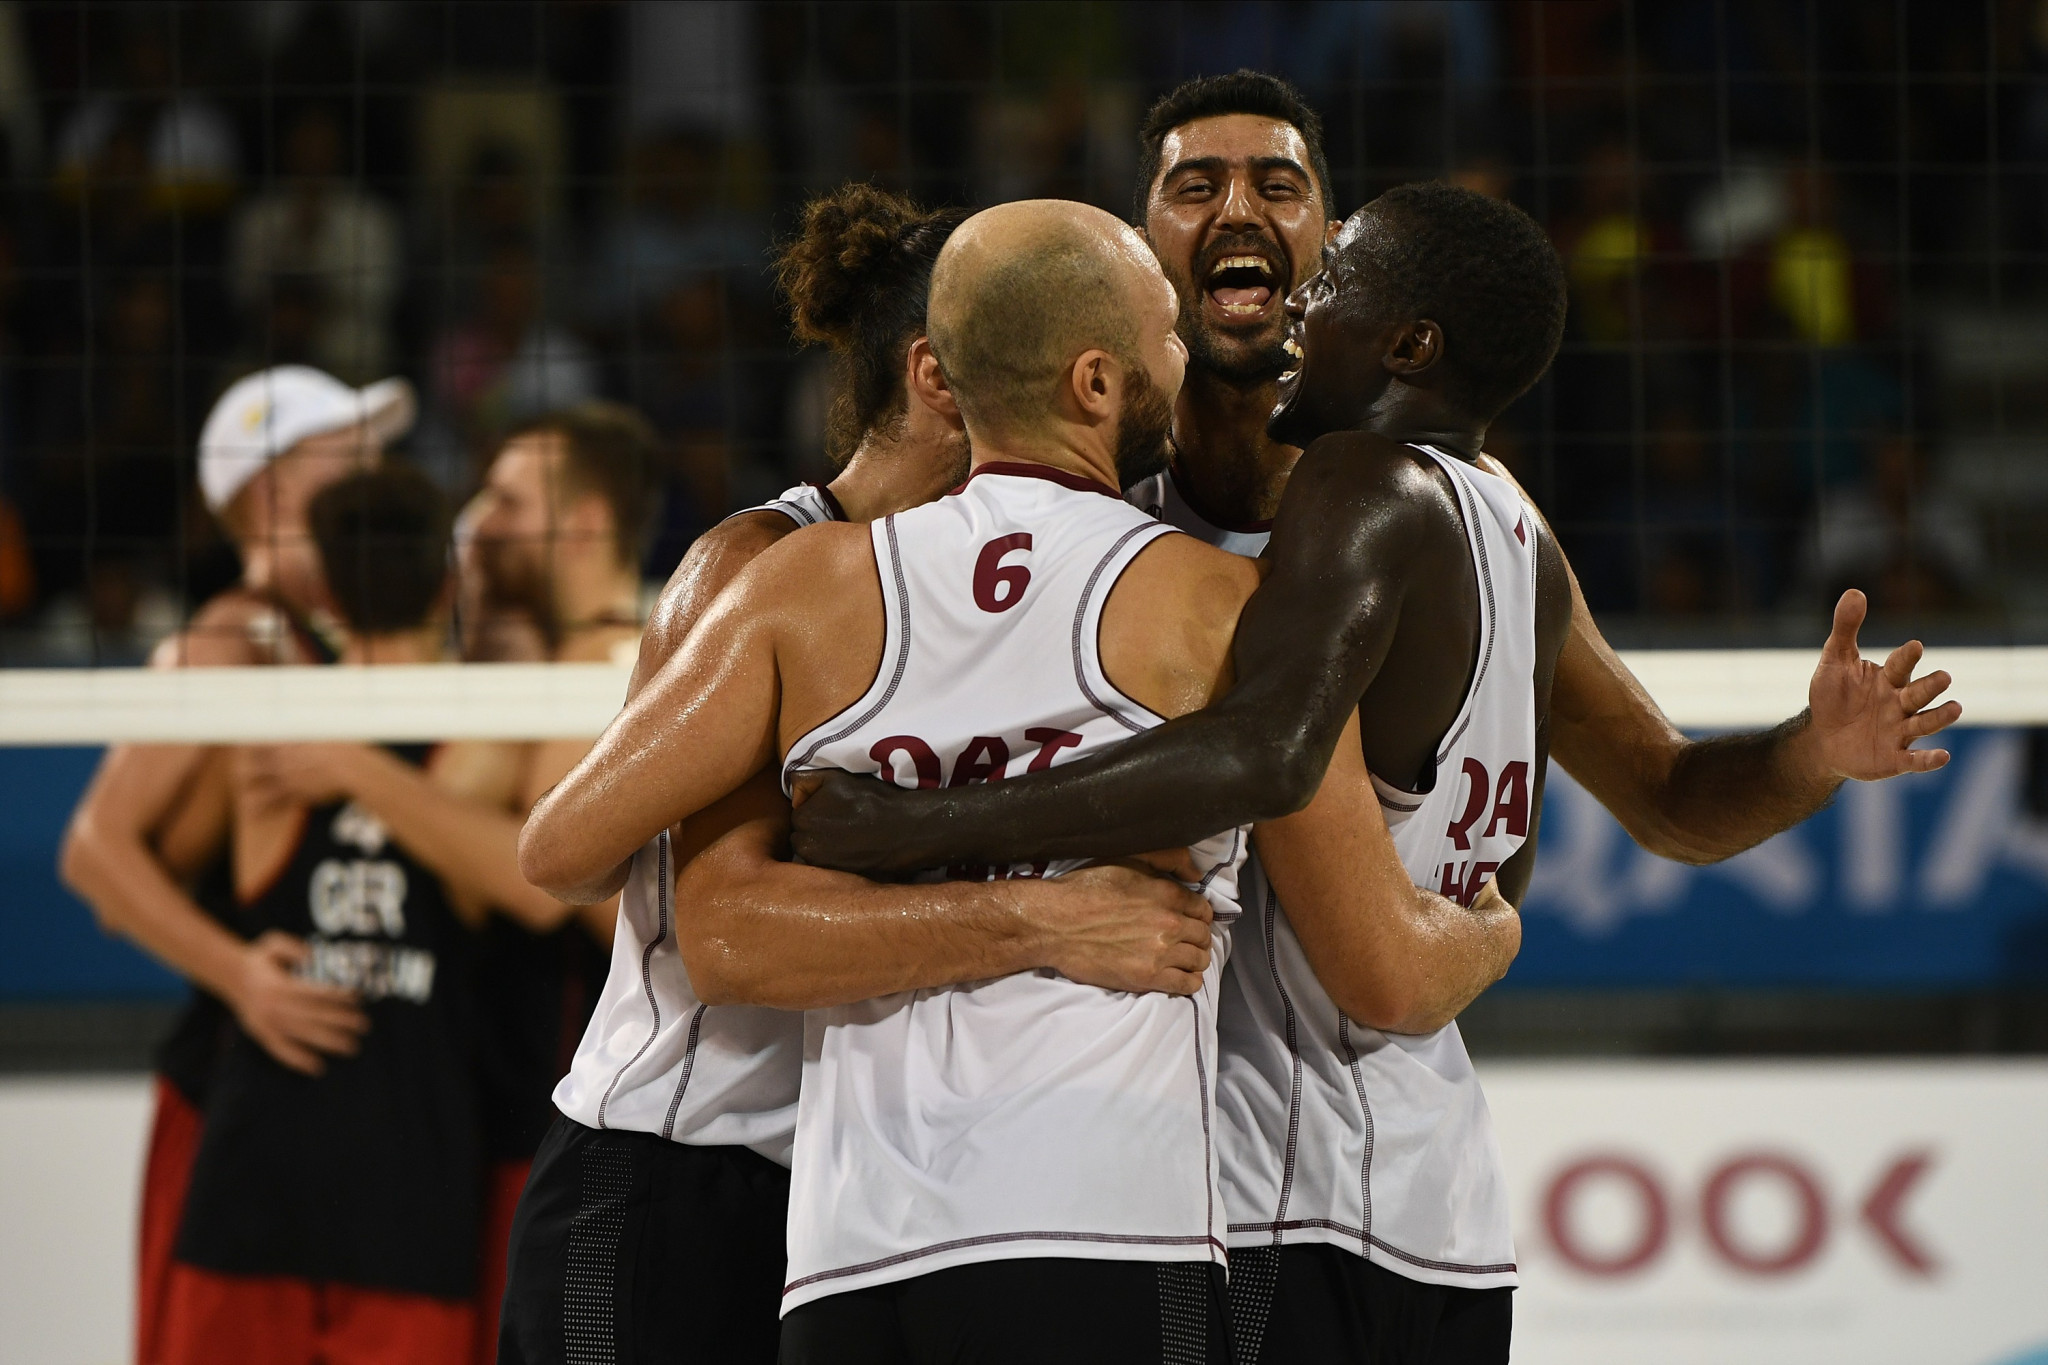 Hosts Qatar saw action in the 4x4 volleyball ©ANOC